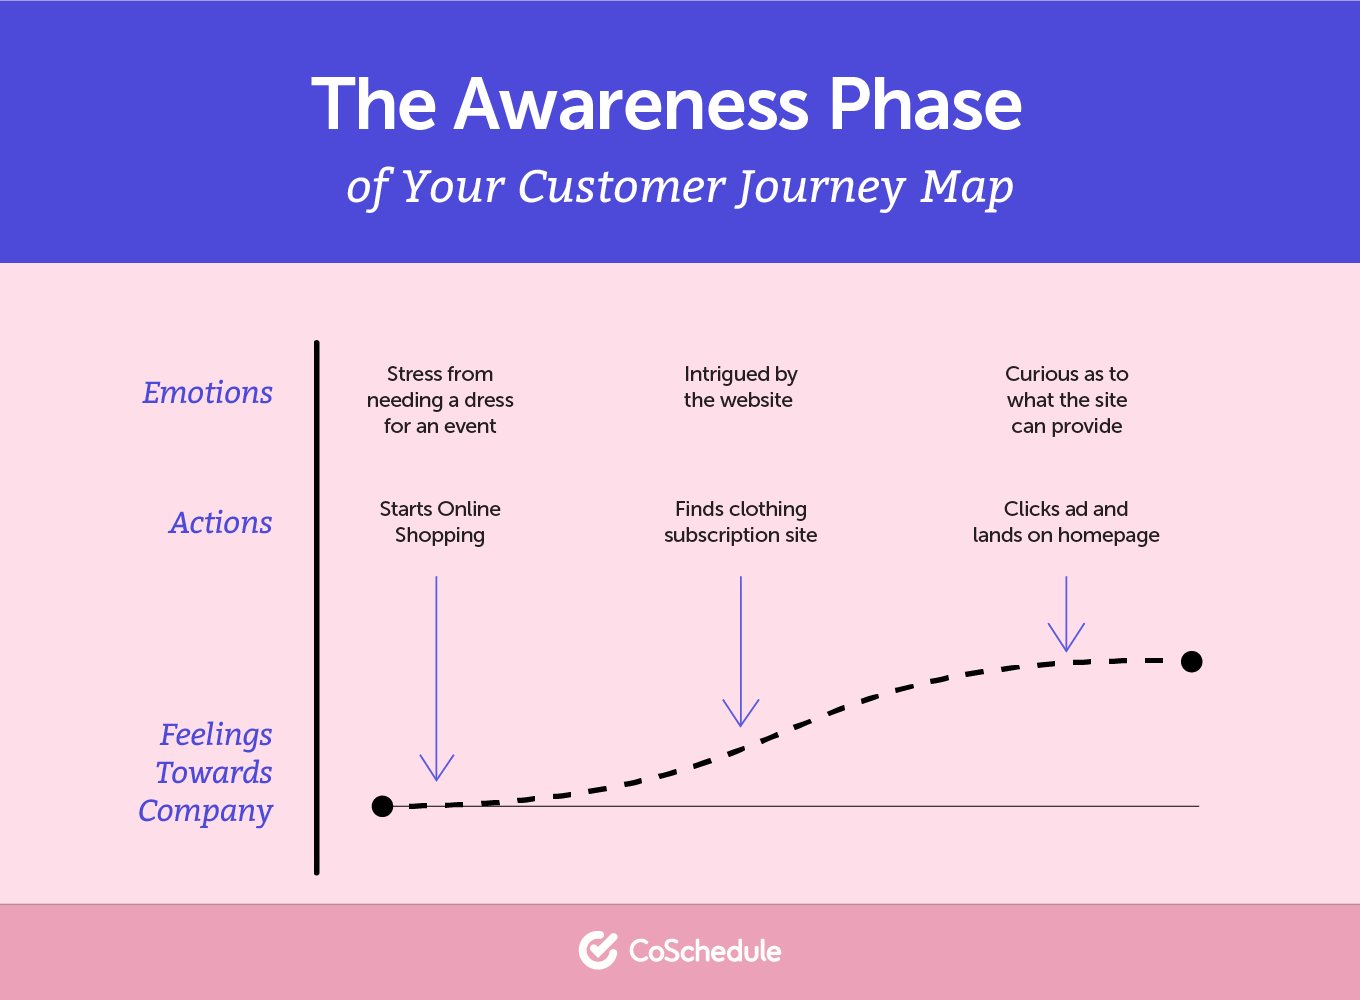 The awareness phase in a buyer's journey